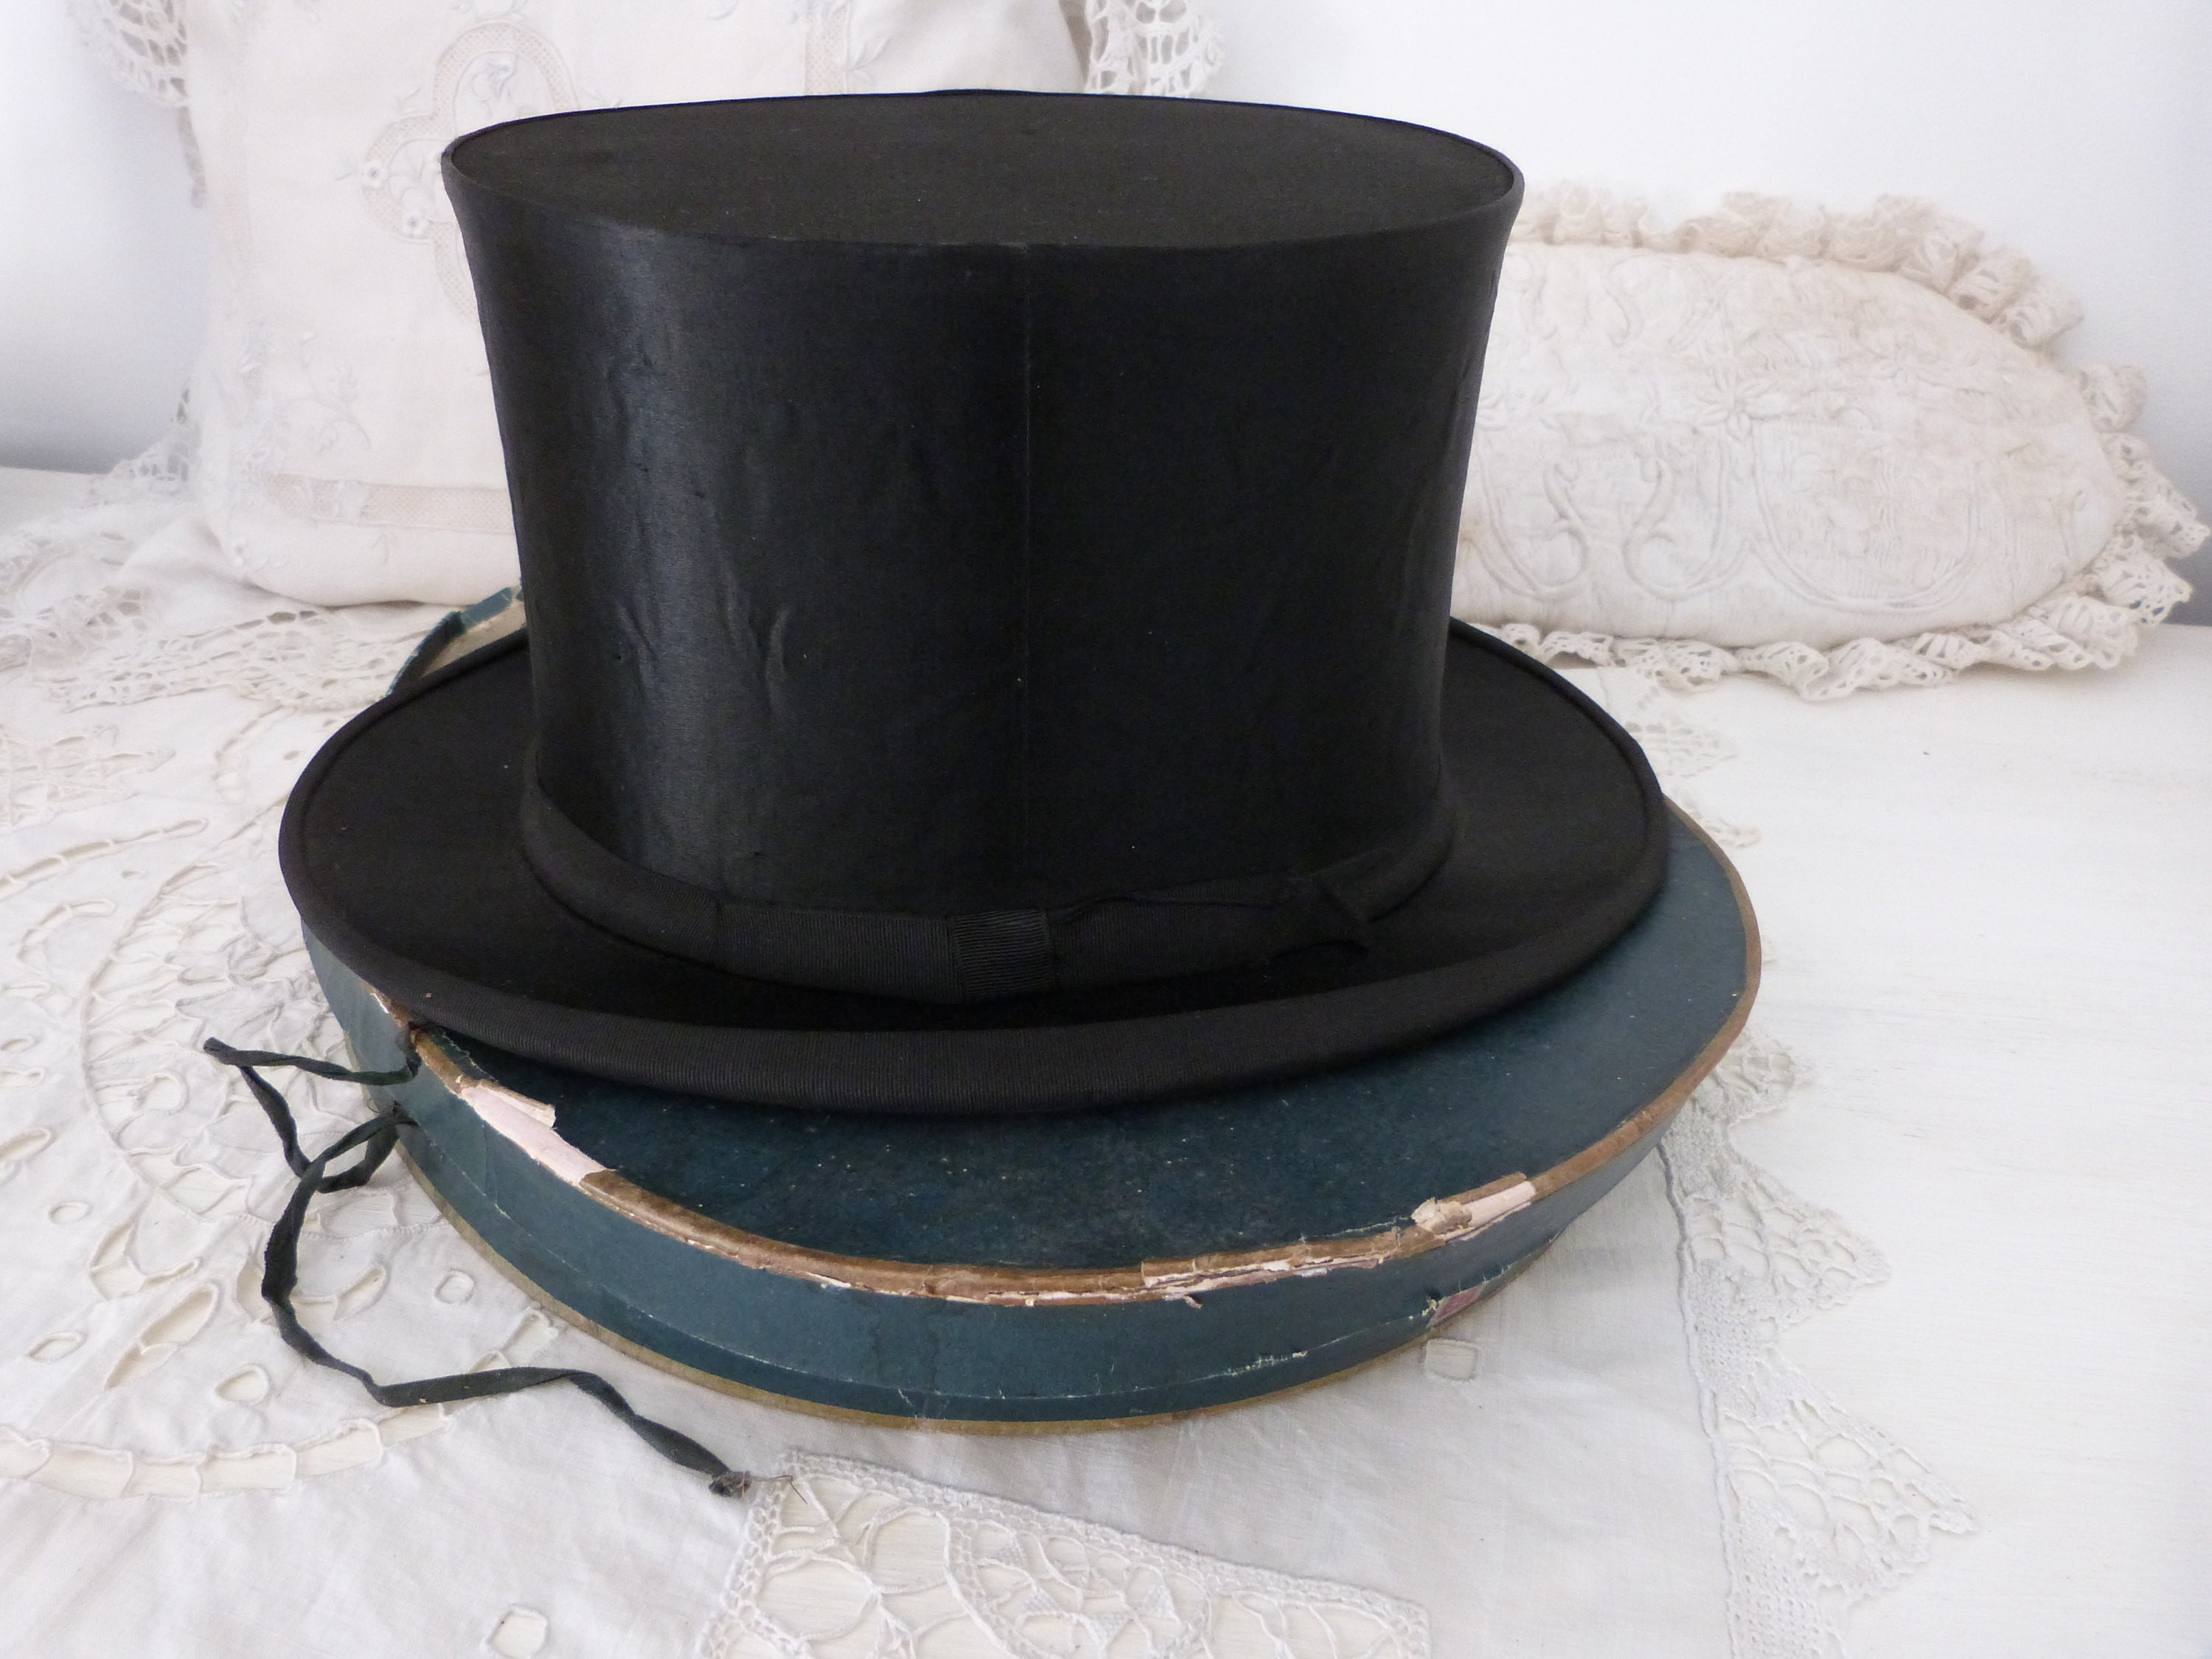 16005176f Antique French silk collapsible top hat Gibus w hat box black opera  steampunk top hat antique victorian mens top hat w stamps, green hatbox